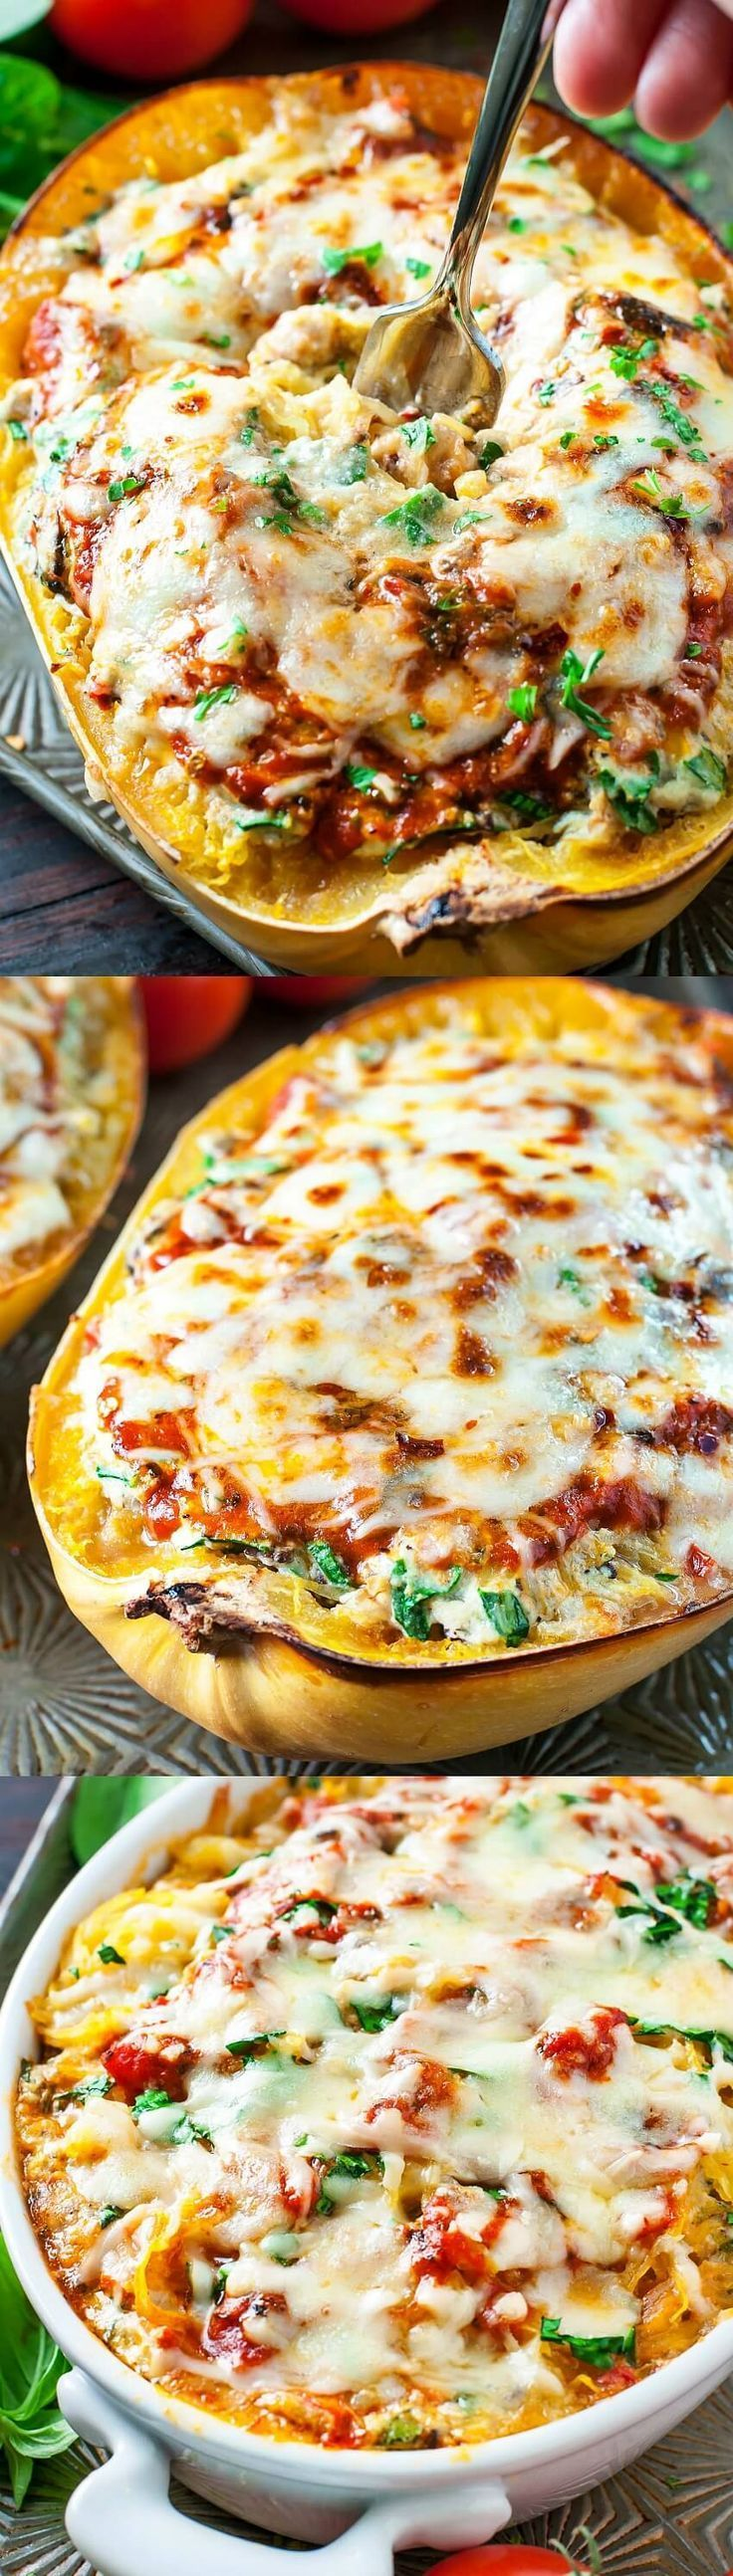 Best 25 comfort food list ideas on pinterest zoup chicken pot this easy cheesy vegetarian spaghetti squash lasagna is a tasty low carb and gluten forumfinder Gallery